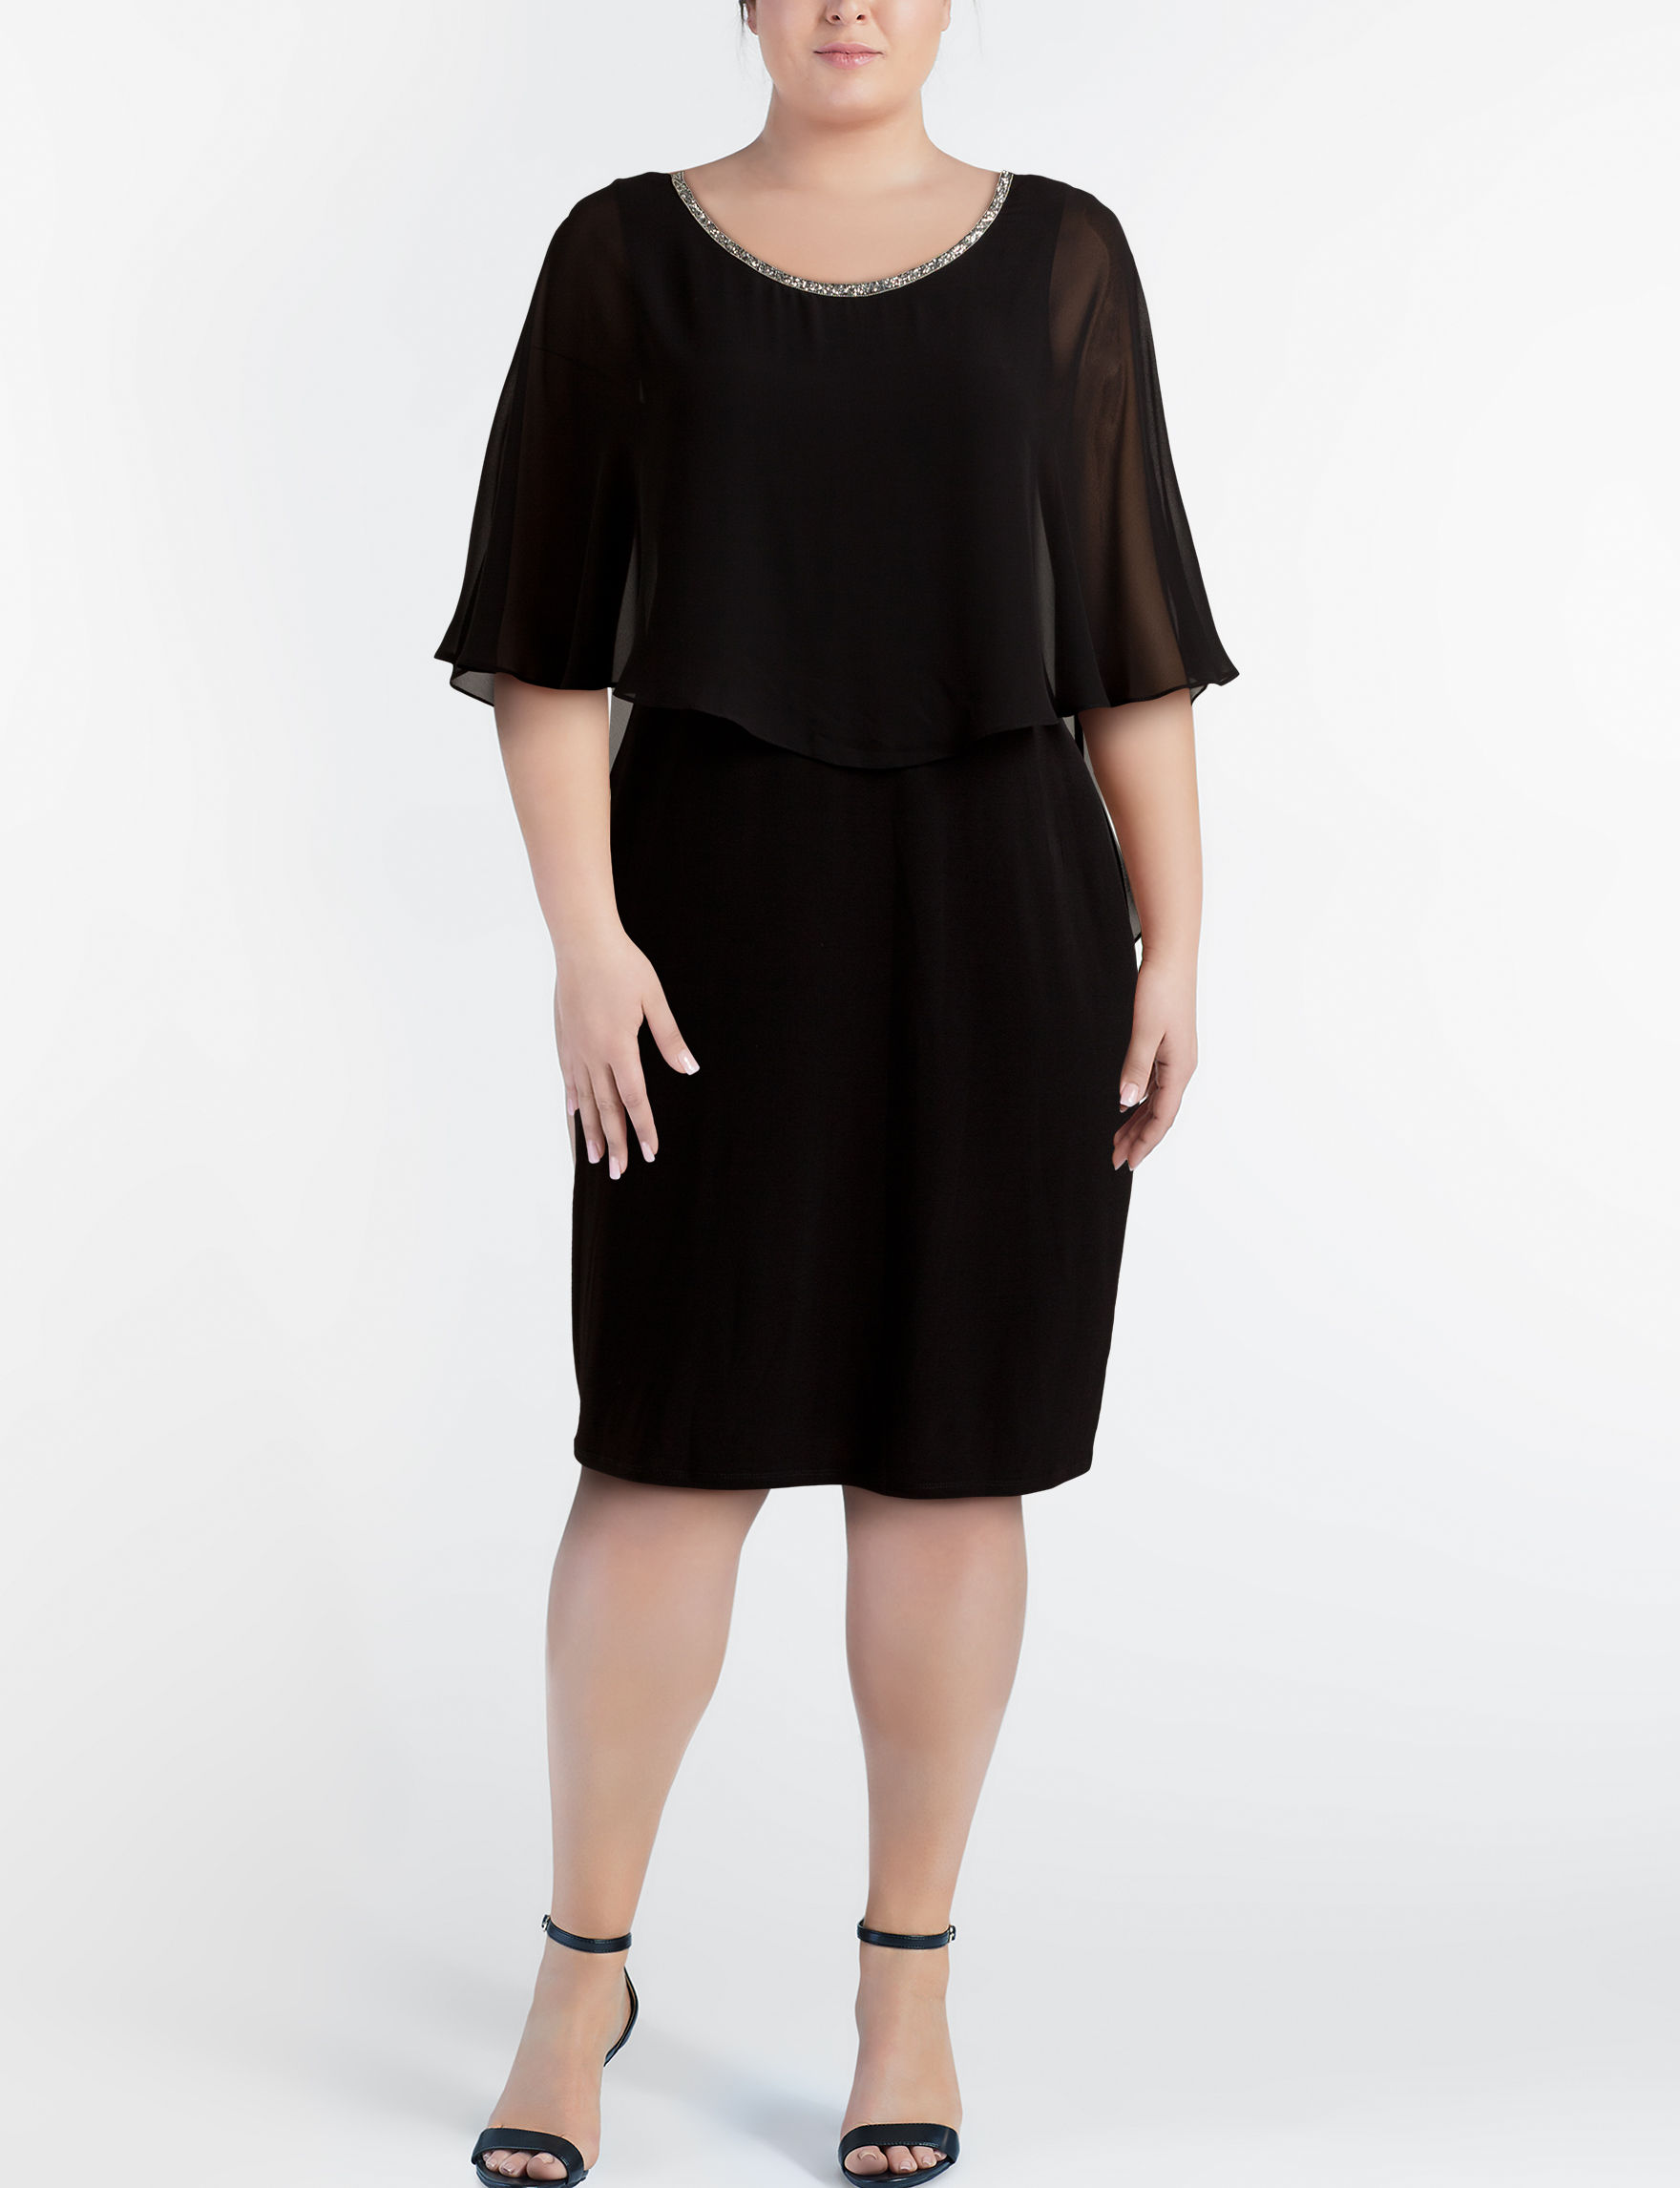 Glamour Black Cocktail & Party Evening & Formal Shift Dresses